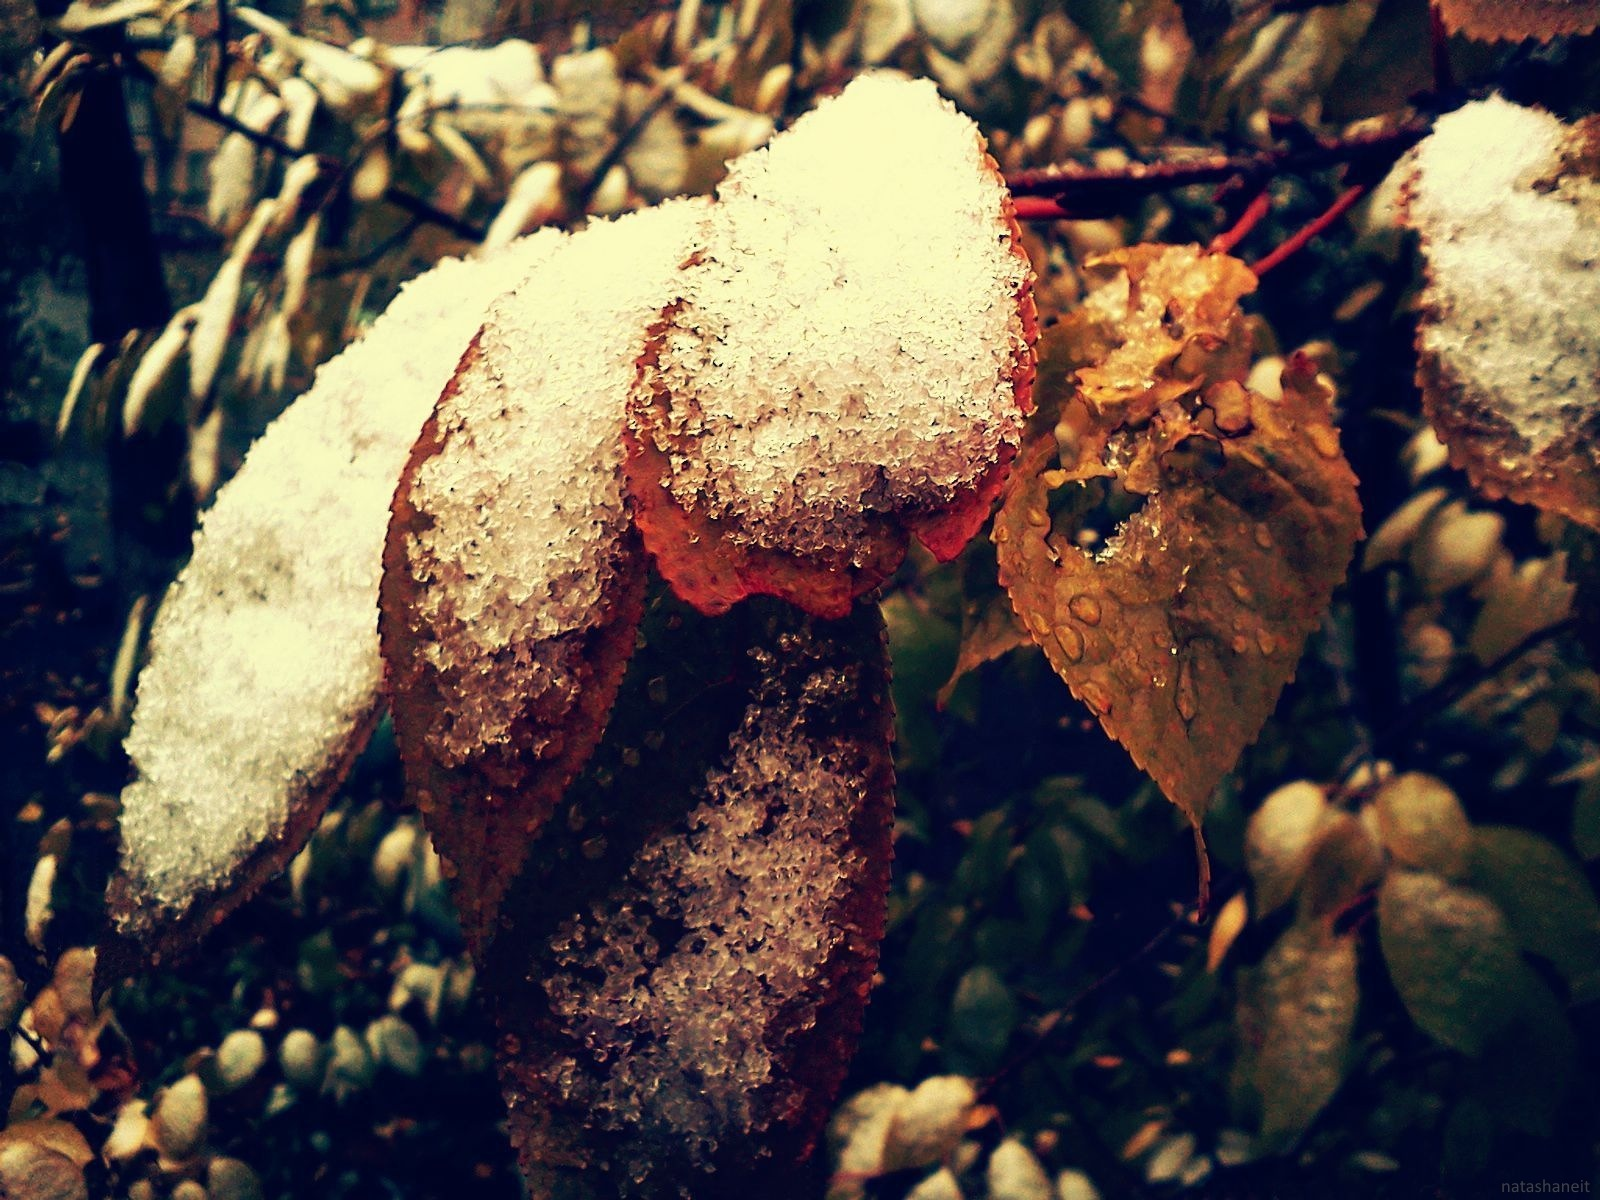 First snow in early November by natashaneit